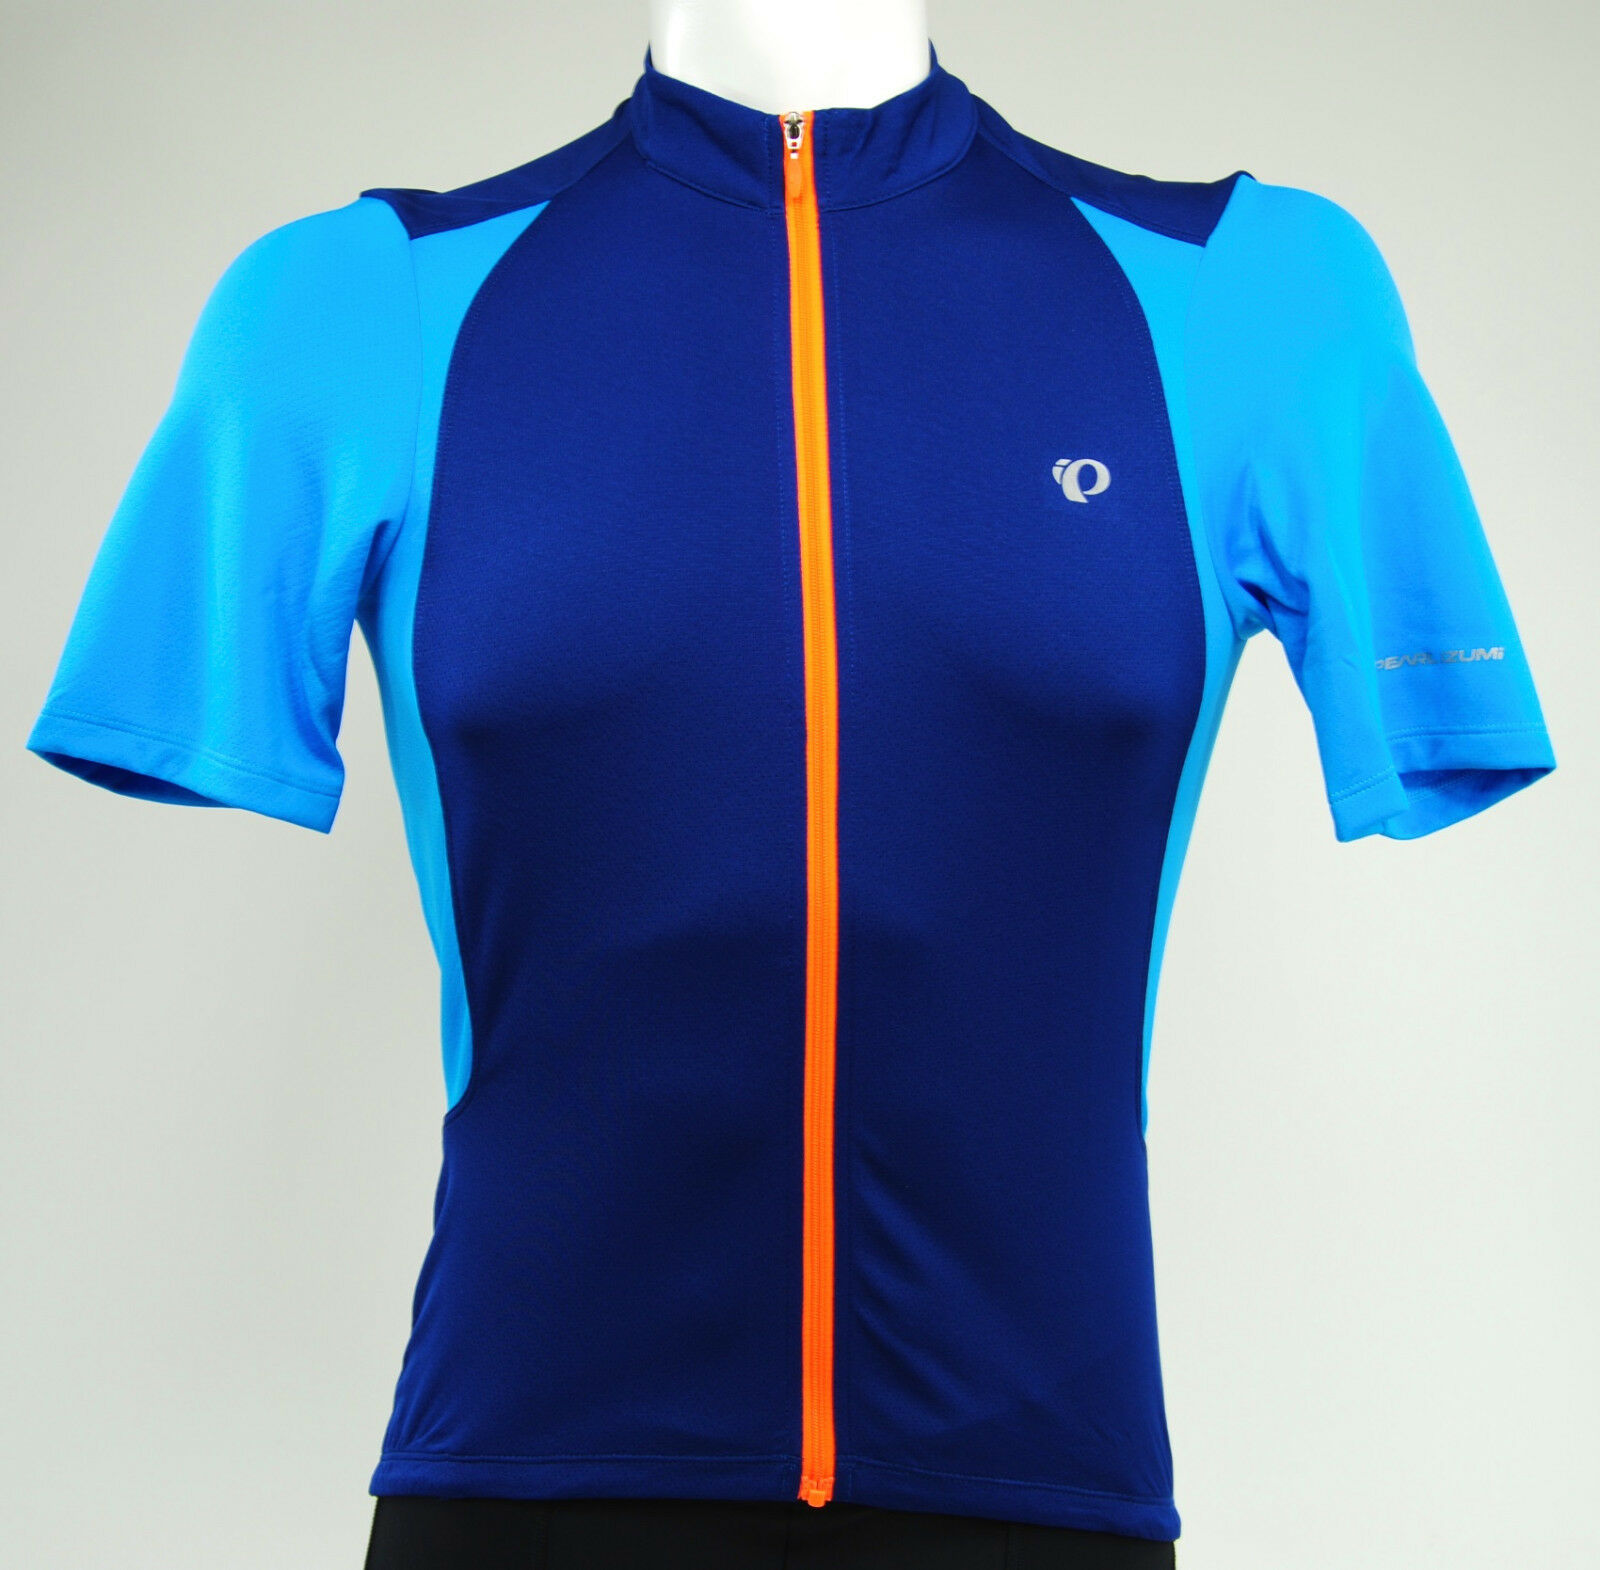 Pearl Izumi 2017 Select Pursuit Cycling Jersey, bluee Depths Bel Air bluee, Large